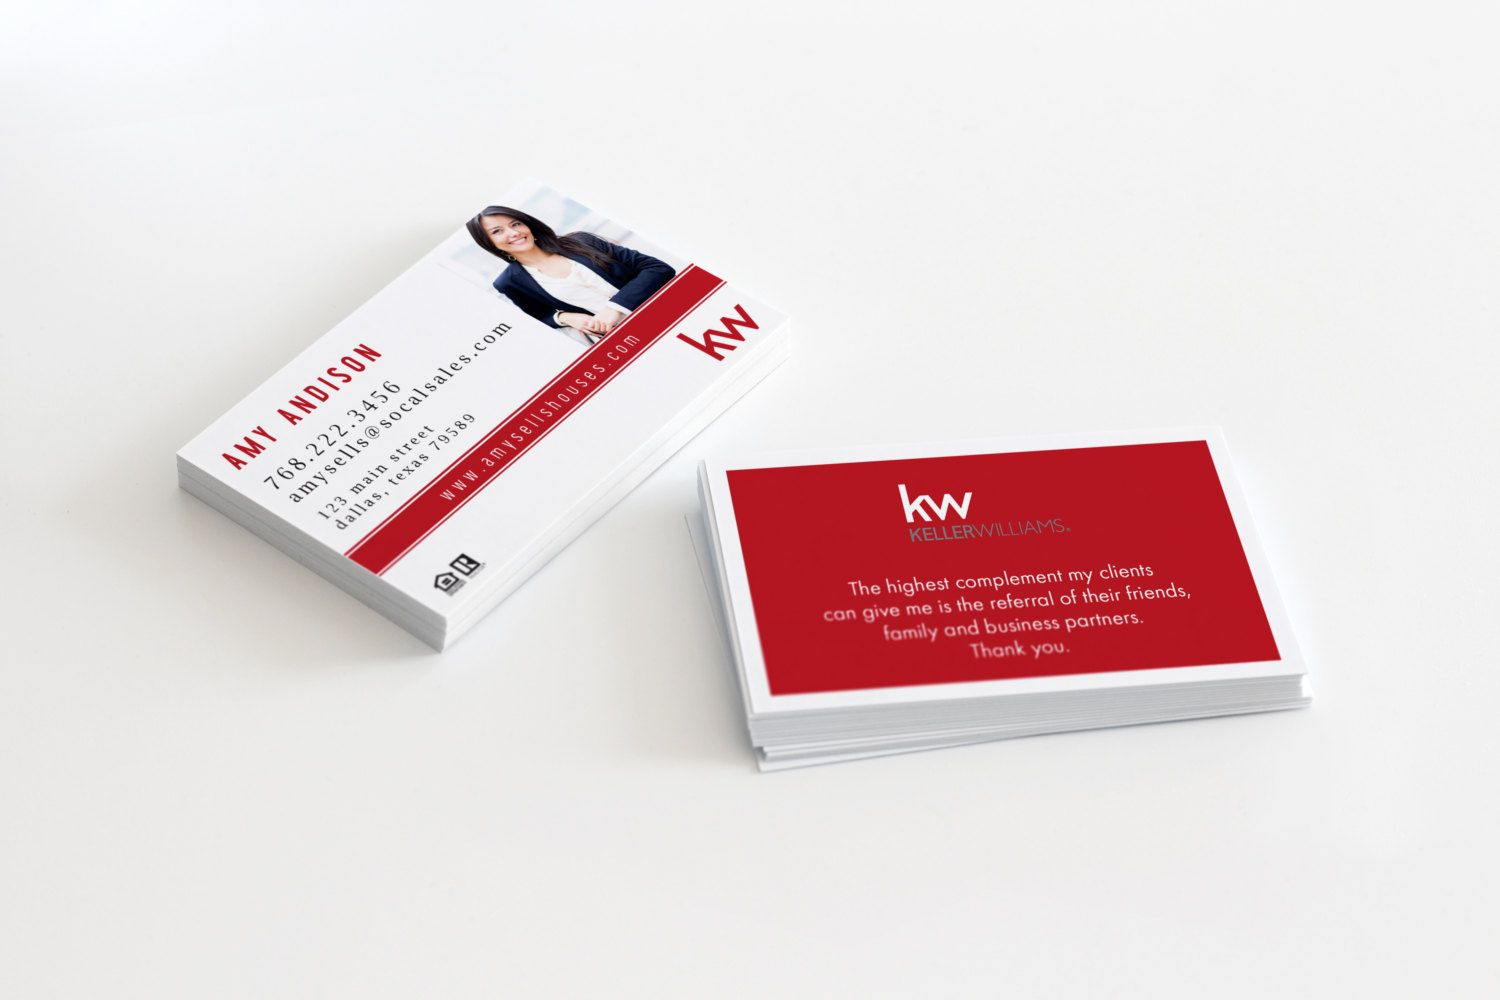 Pre made ready to order realtor business cards complement quote pre made ready to order realtor business cards complement quote modern keller williams gloss or matte color free ups shipping century 21 re max 080 by reheart Choice Image